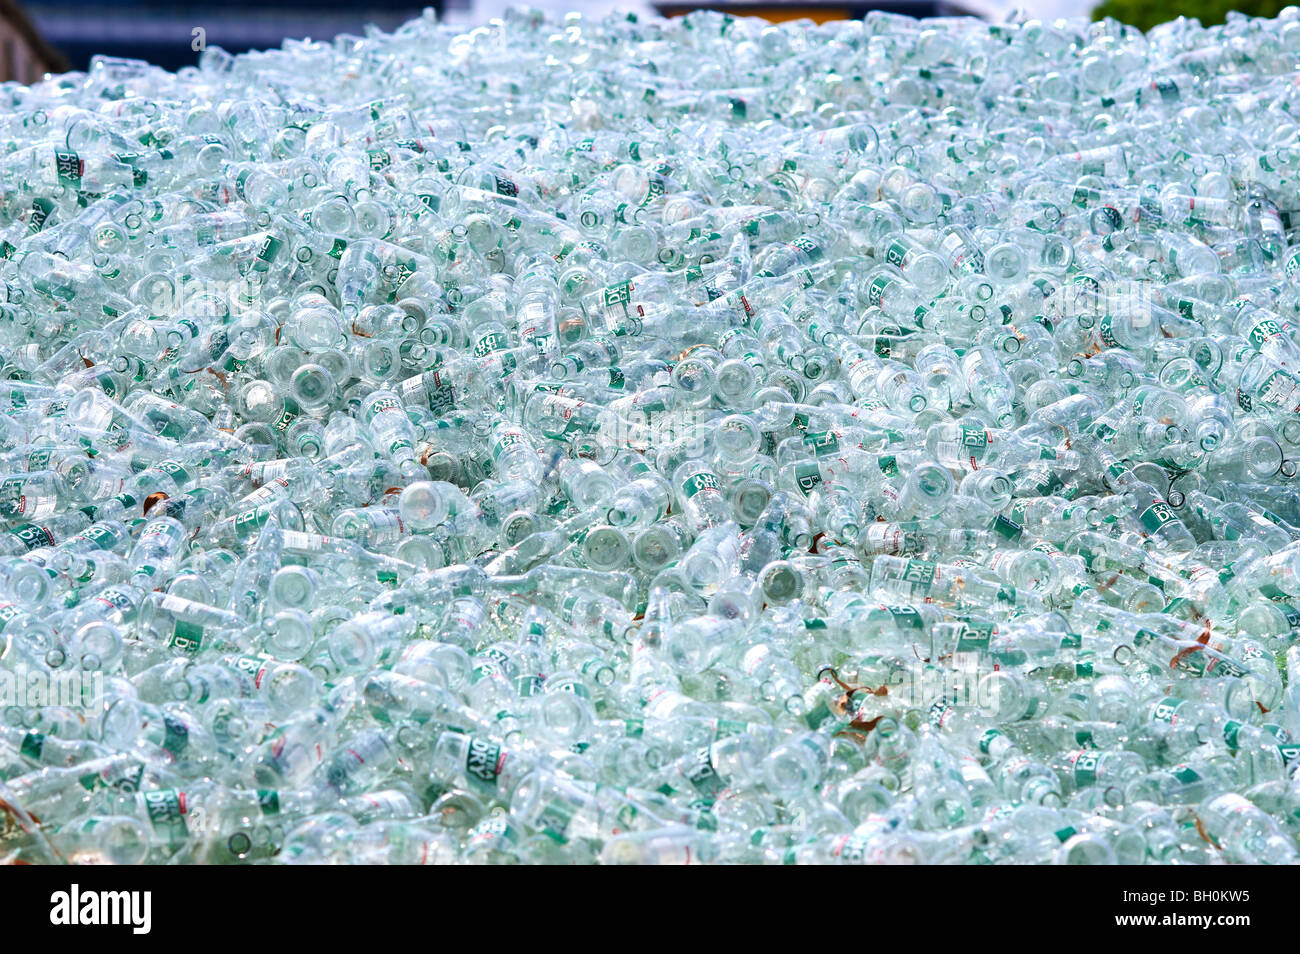 Glas-recycling-Anlage Stockbild